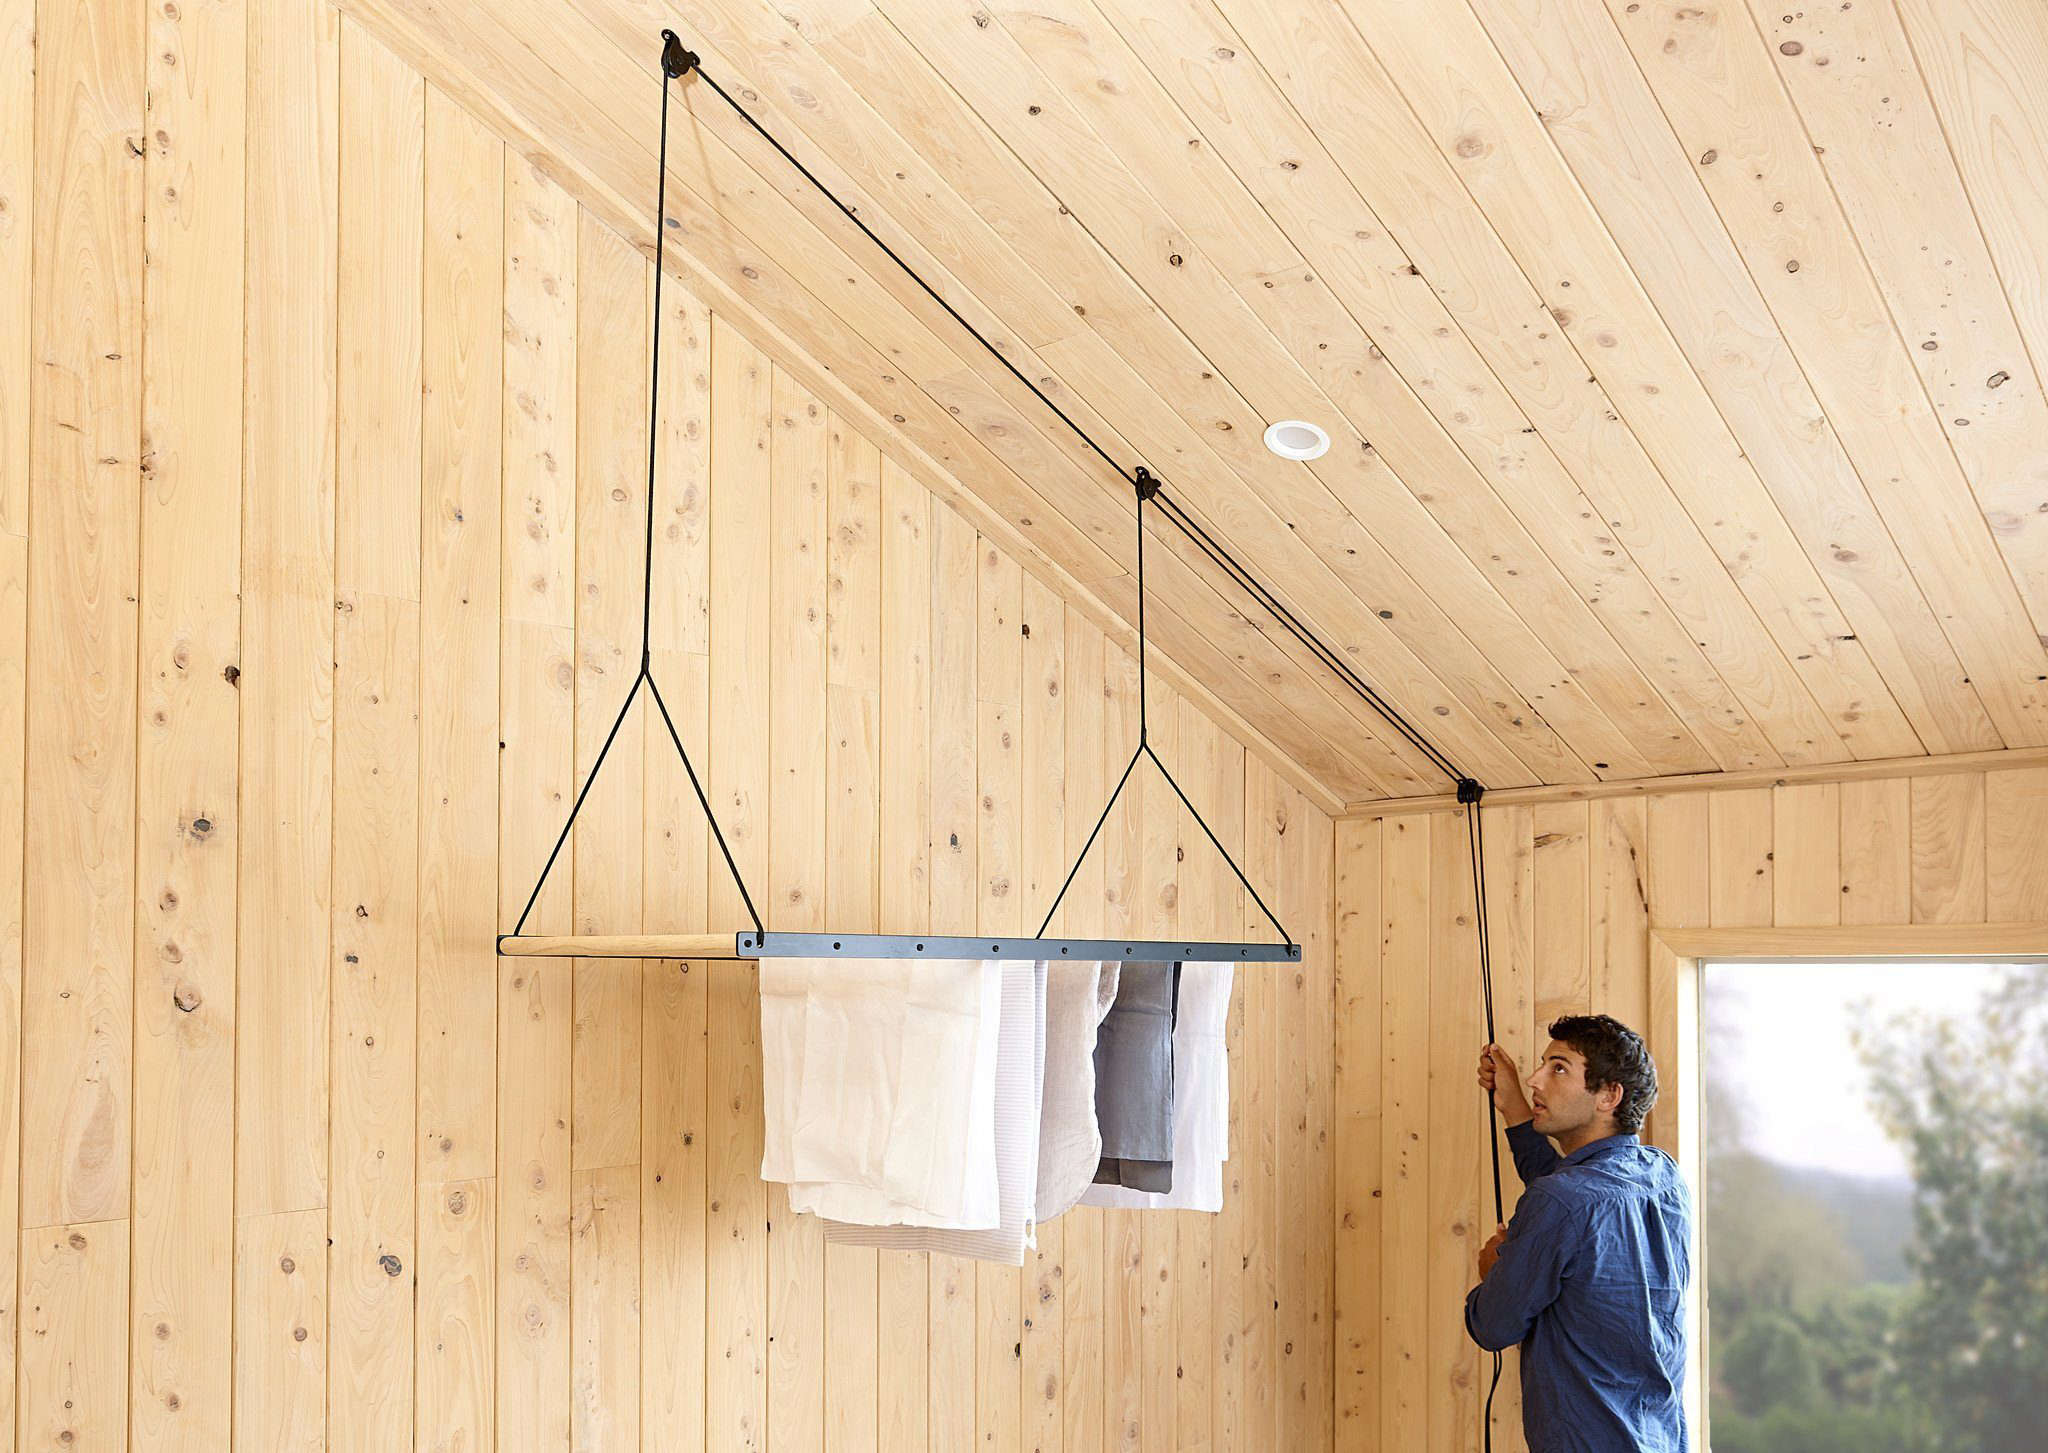 George and Willy Laundry Rack in Wood Paneled Room